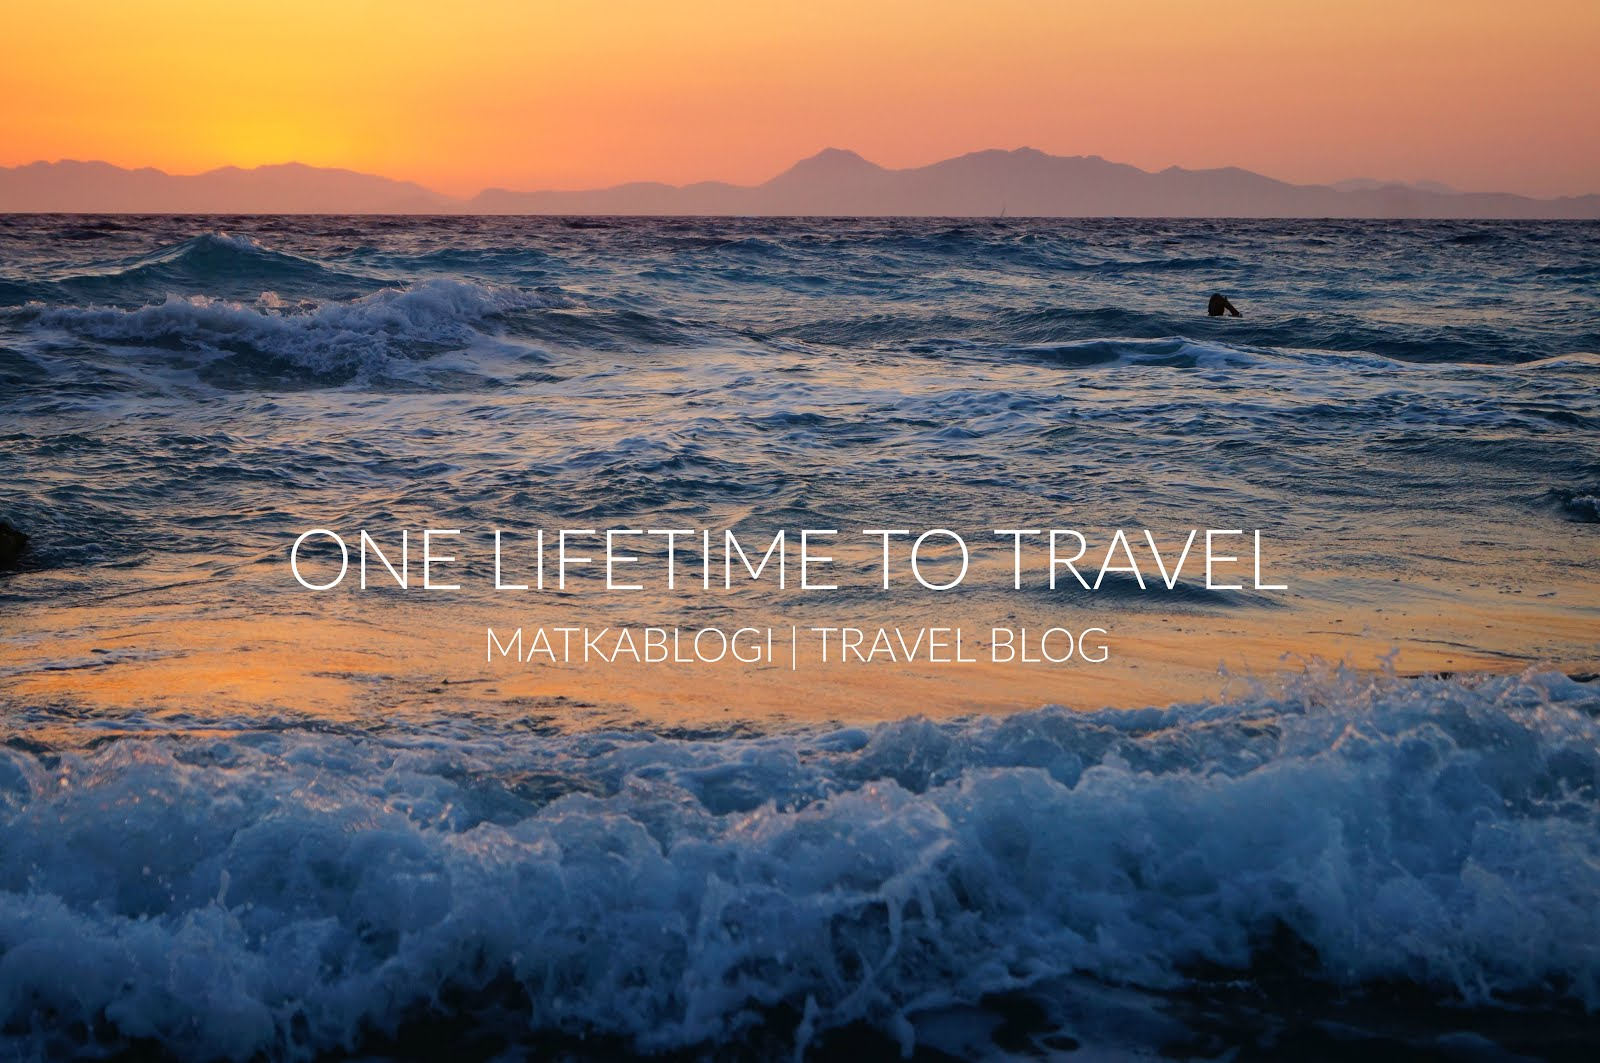 ONE LIFETIME TO TRAVEL